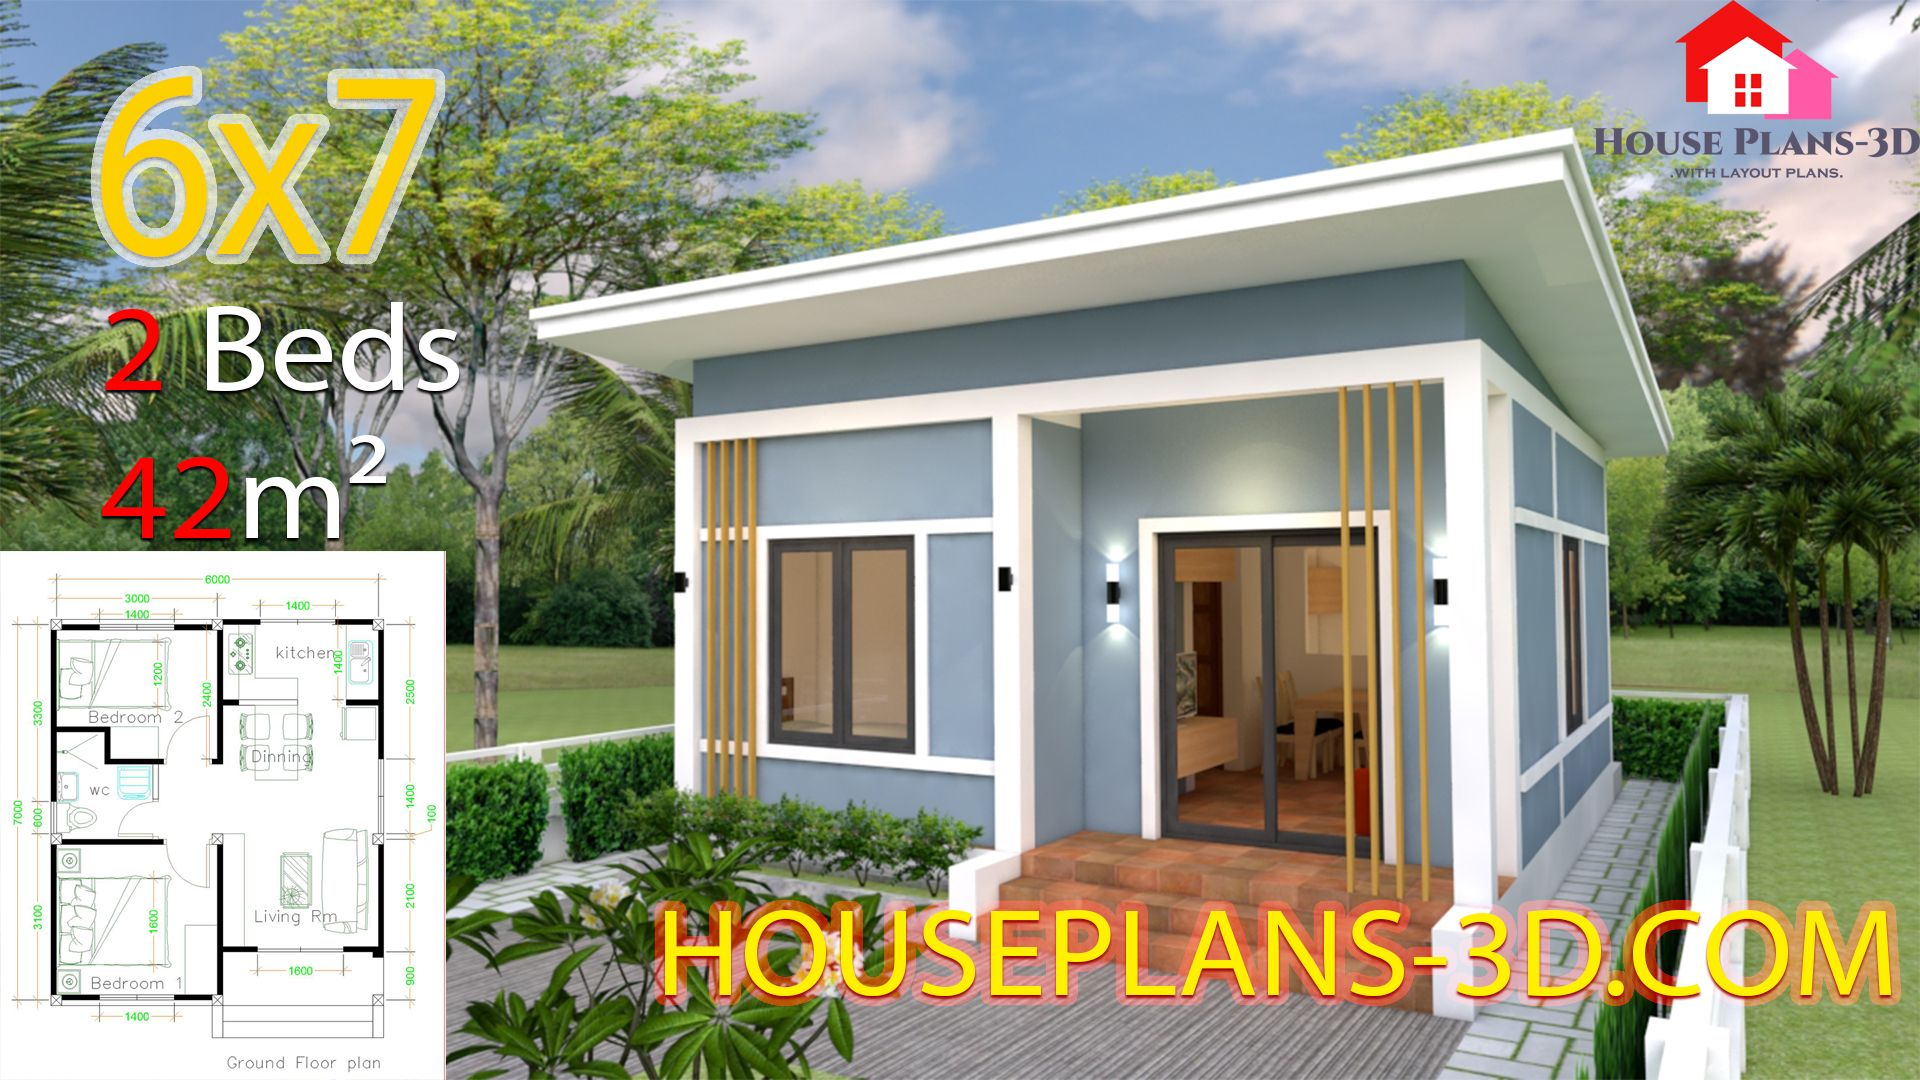 Simple House Plans 6x7 With 2 Bedrooms Shed Roof House Plans 3d House Plans Simple House Plans Flat Roof House